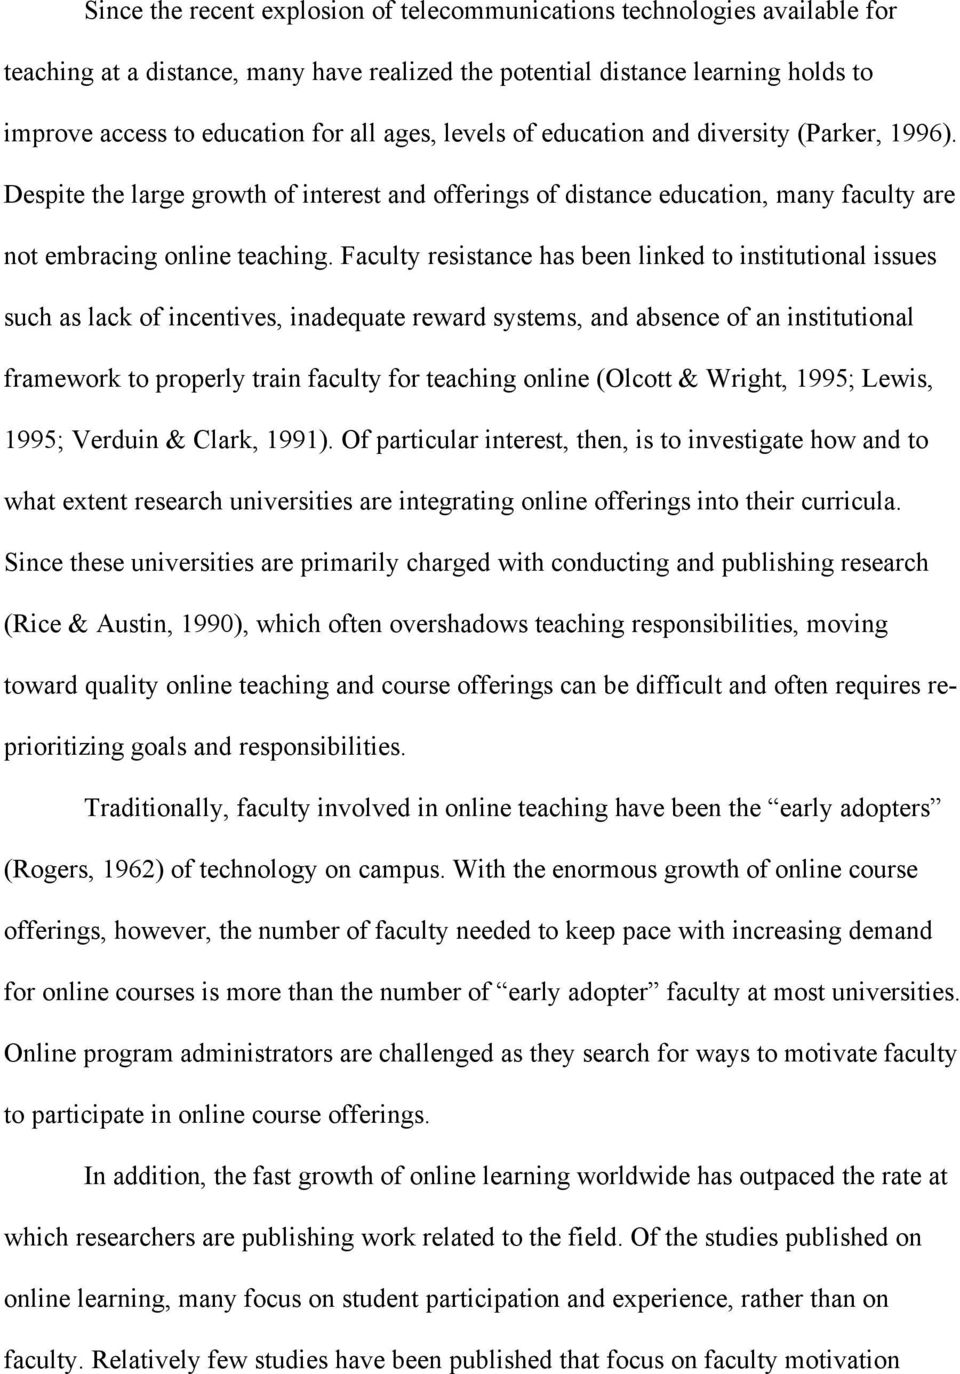 Faculty resistance has been linked to institutional issues such as lack of incentives, inadequate reward systems, and absence of an institutional framework to properly train faculty for teaching